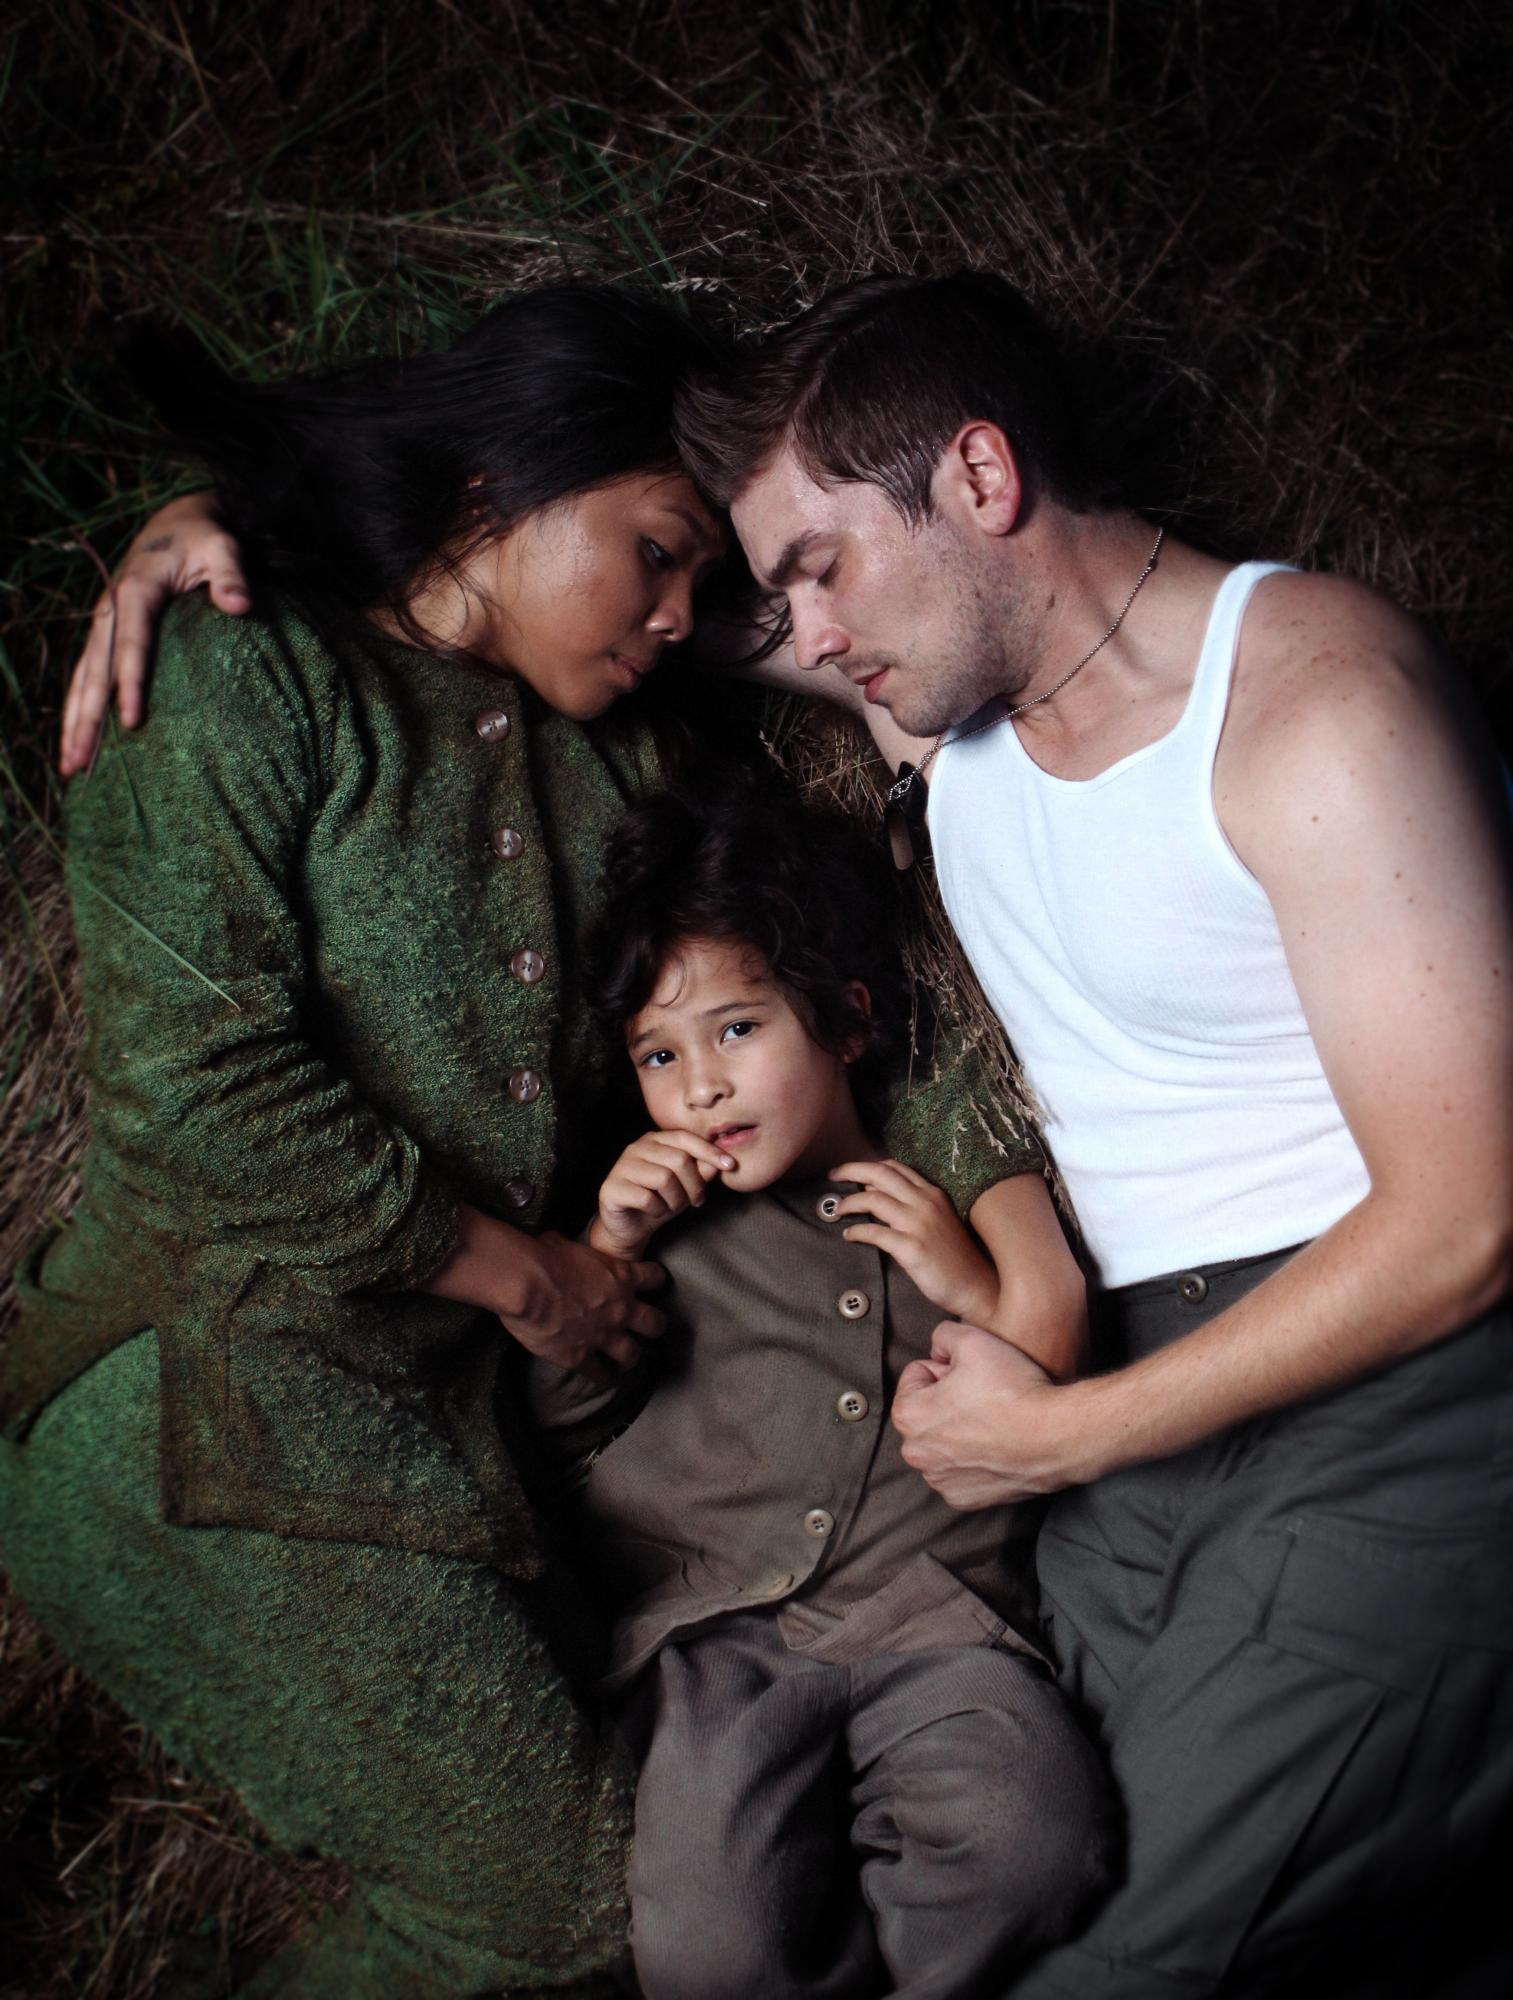 Miss Saigon [Publicity Photo], Serenbe Playhouse/ Photo by BreeAnne Clowdus